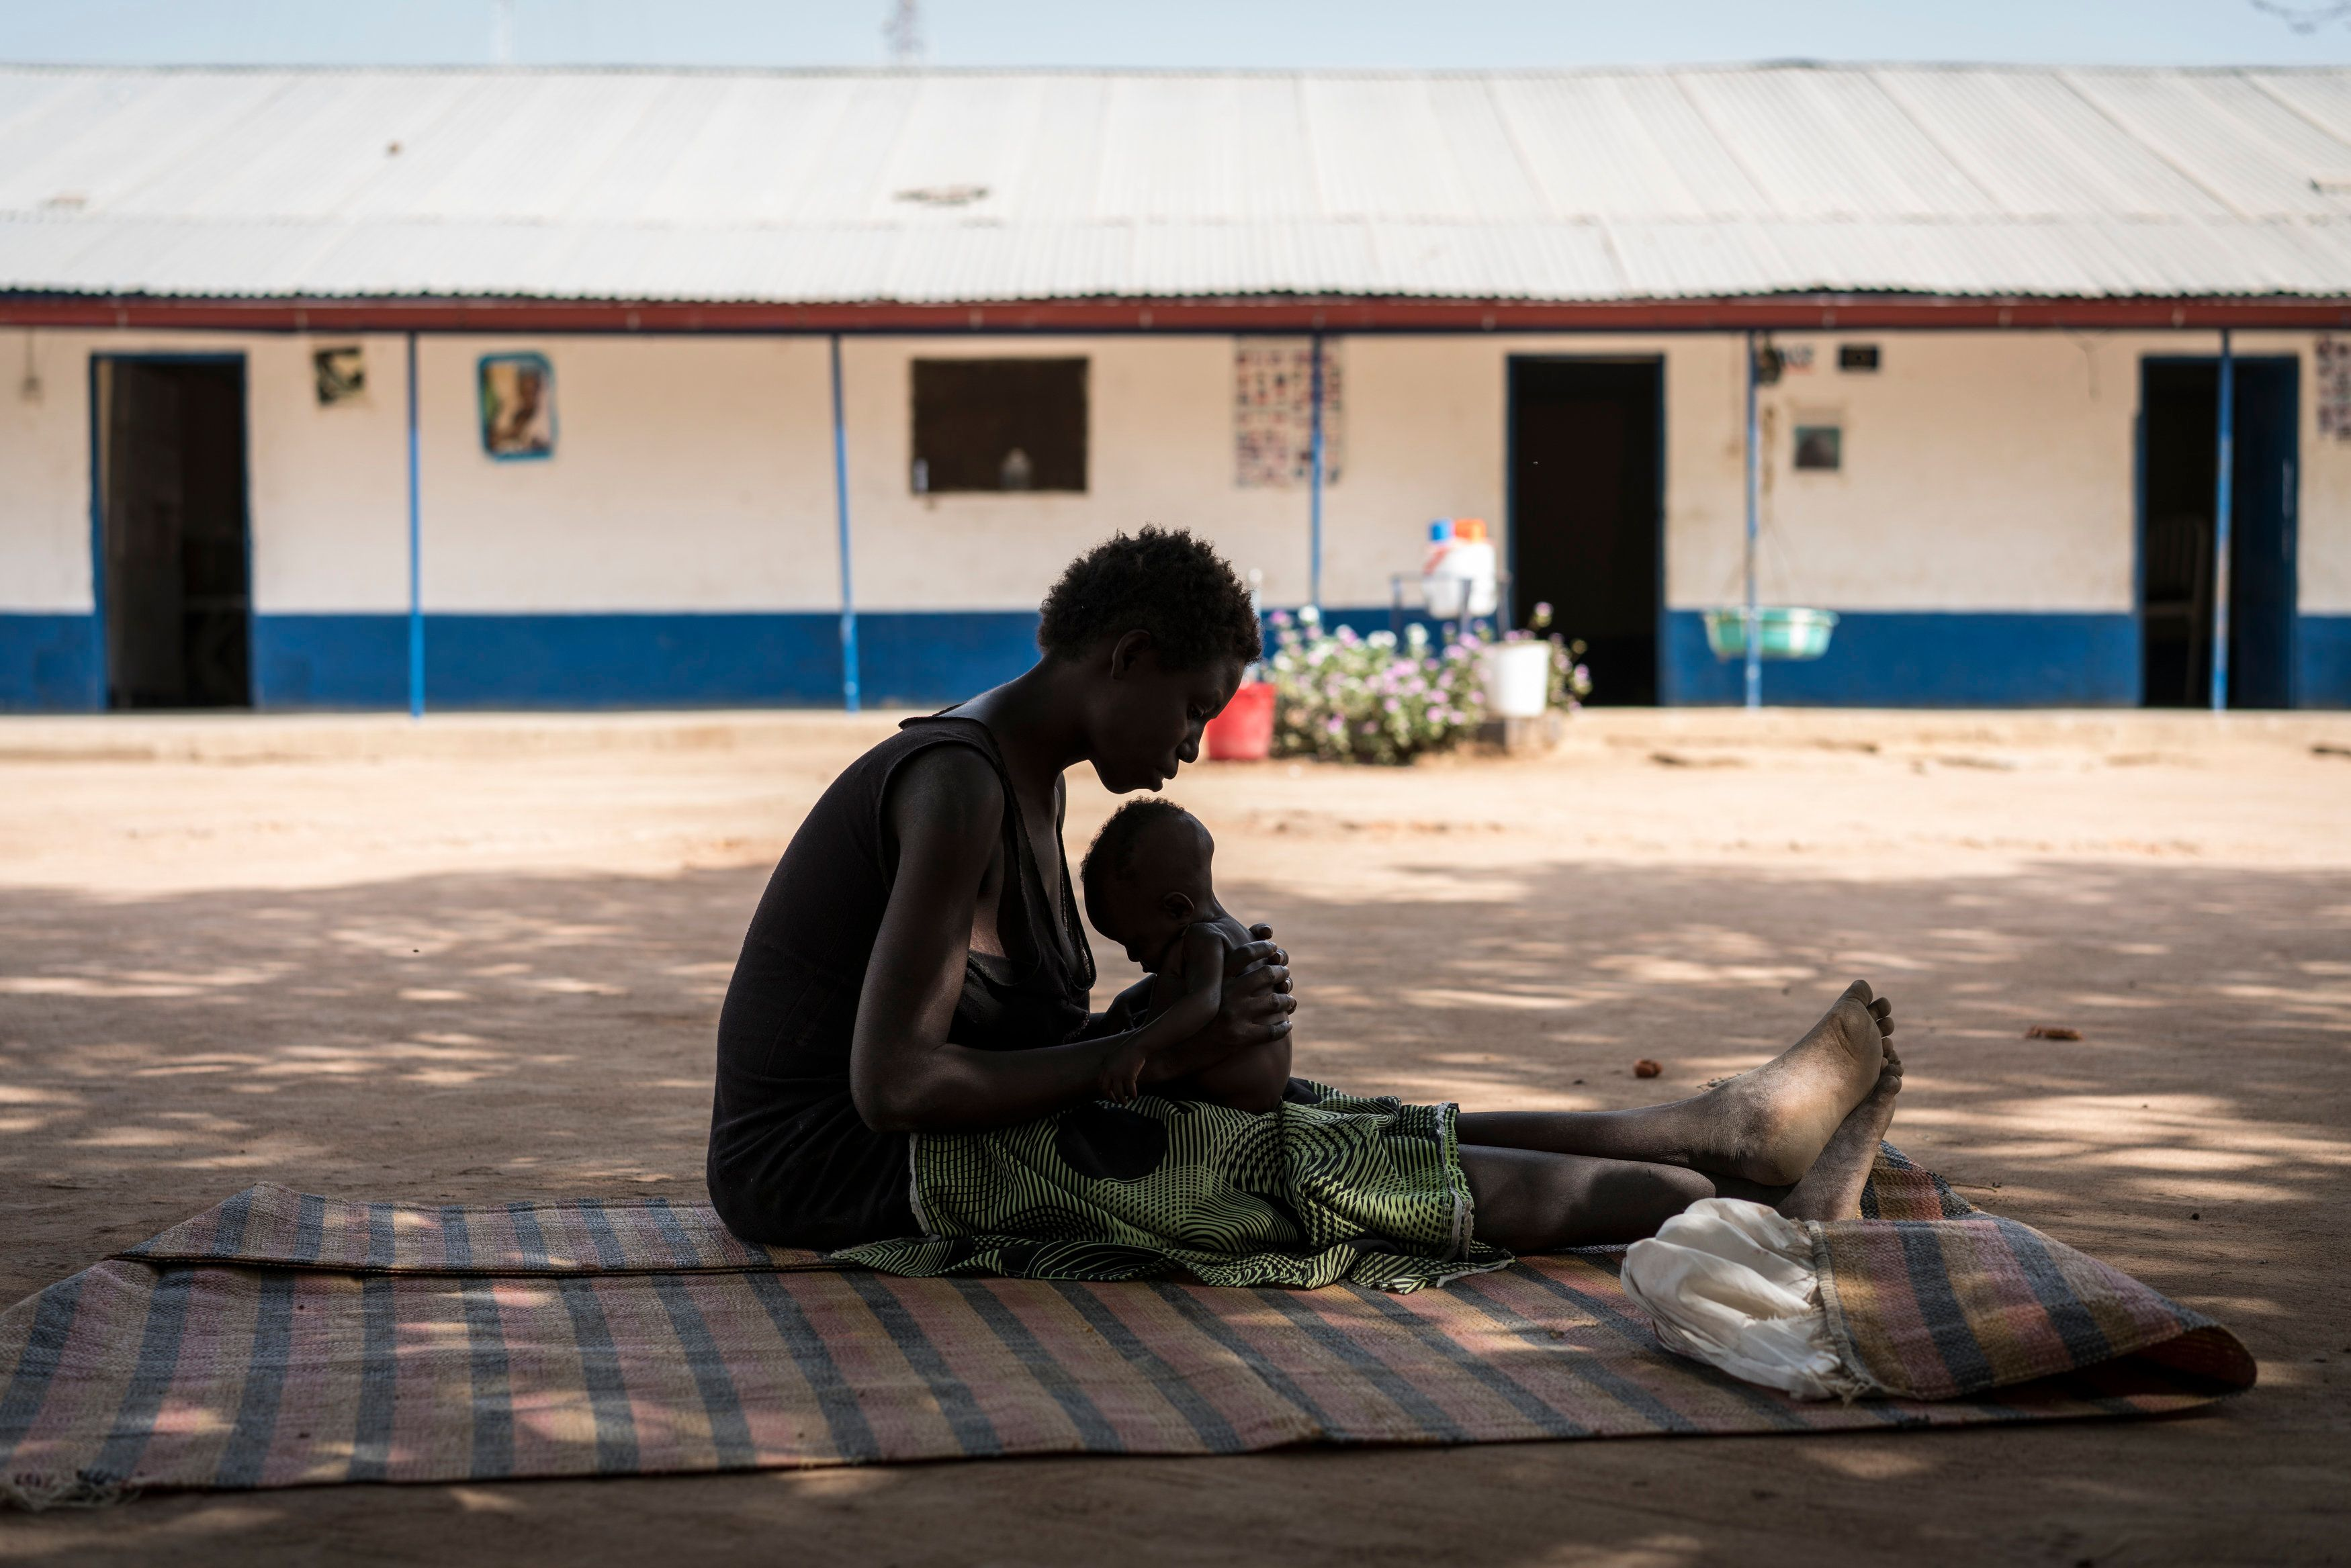 A young mother cradles her malnourished child outside a UNICEF-supported center in South Sudan on March 11.